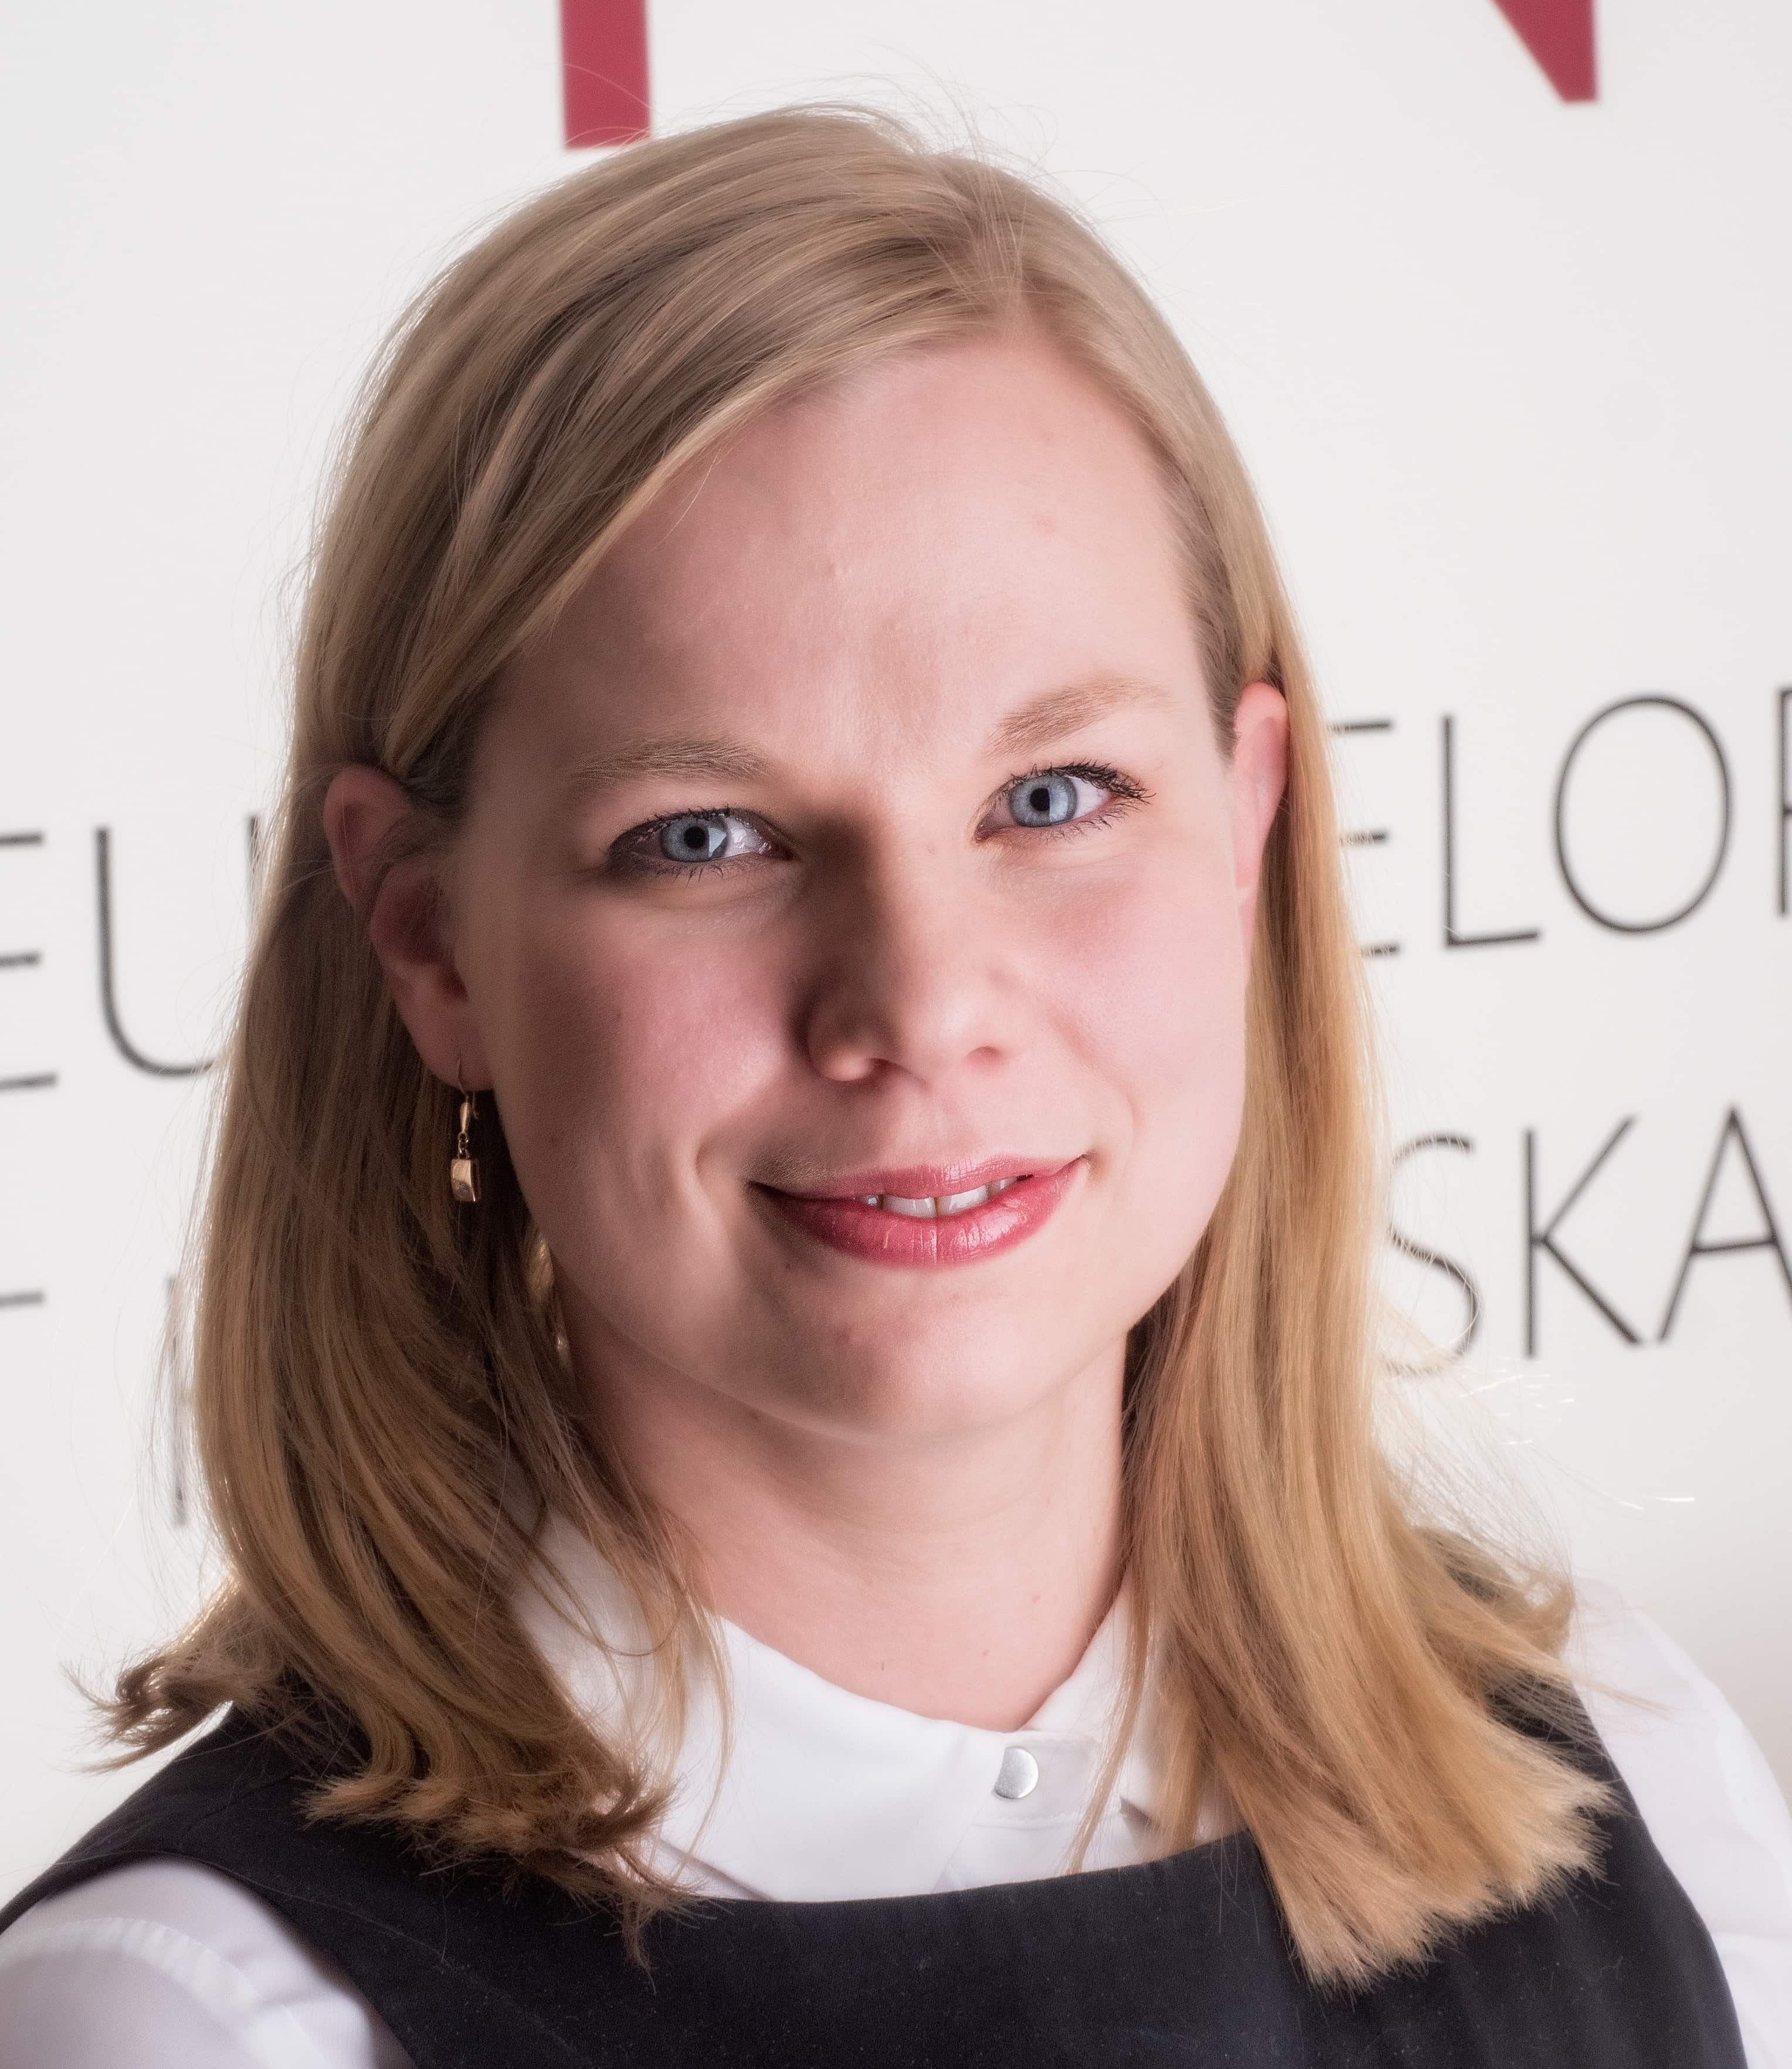 Dr. Kristiina Tammimies, a blonde researcher, smiles at the camera